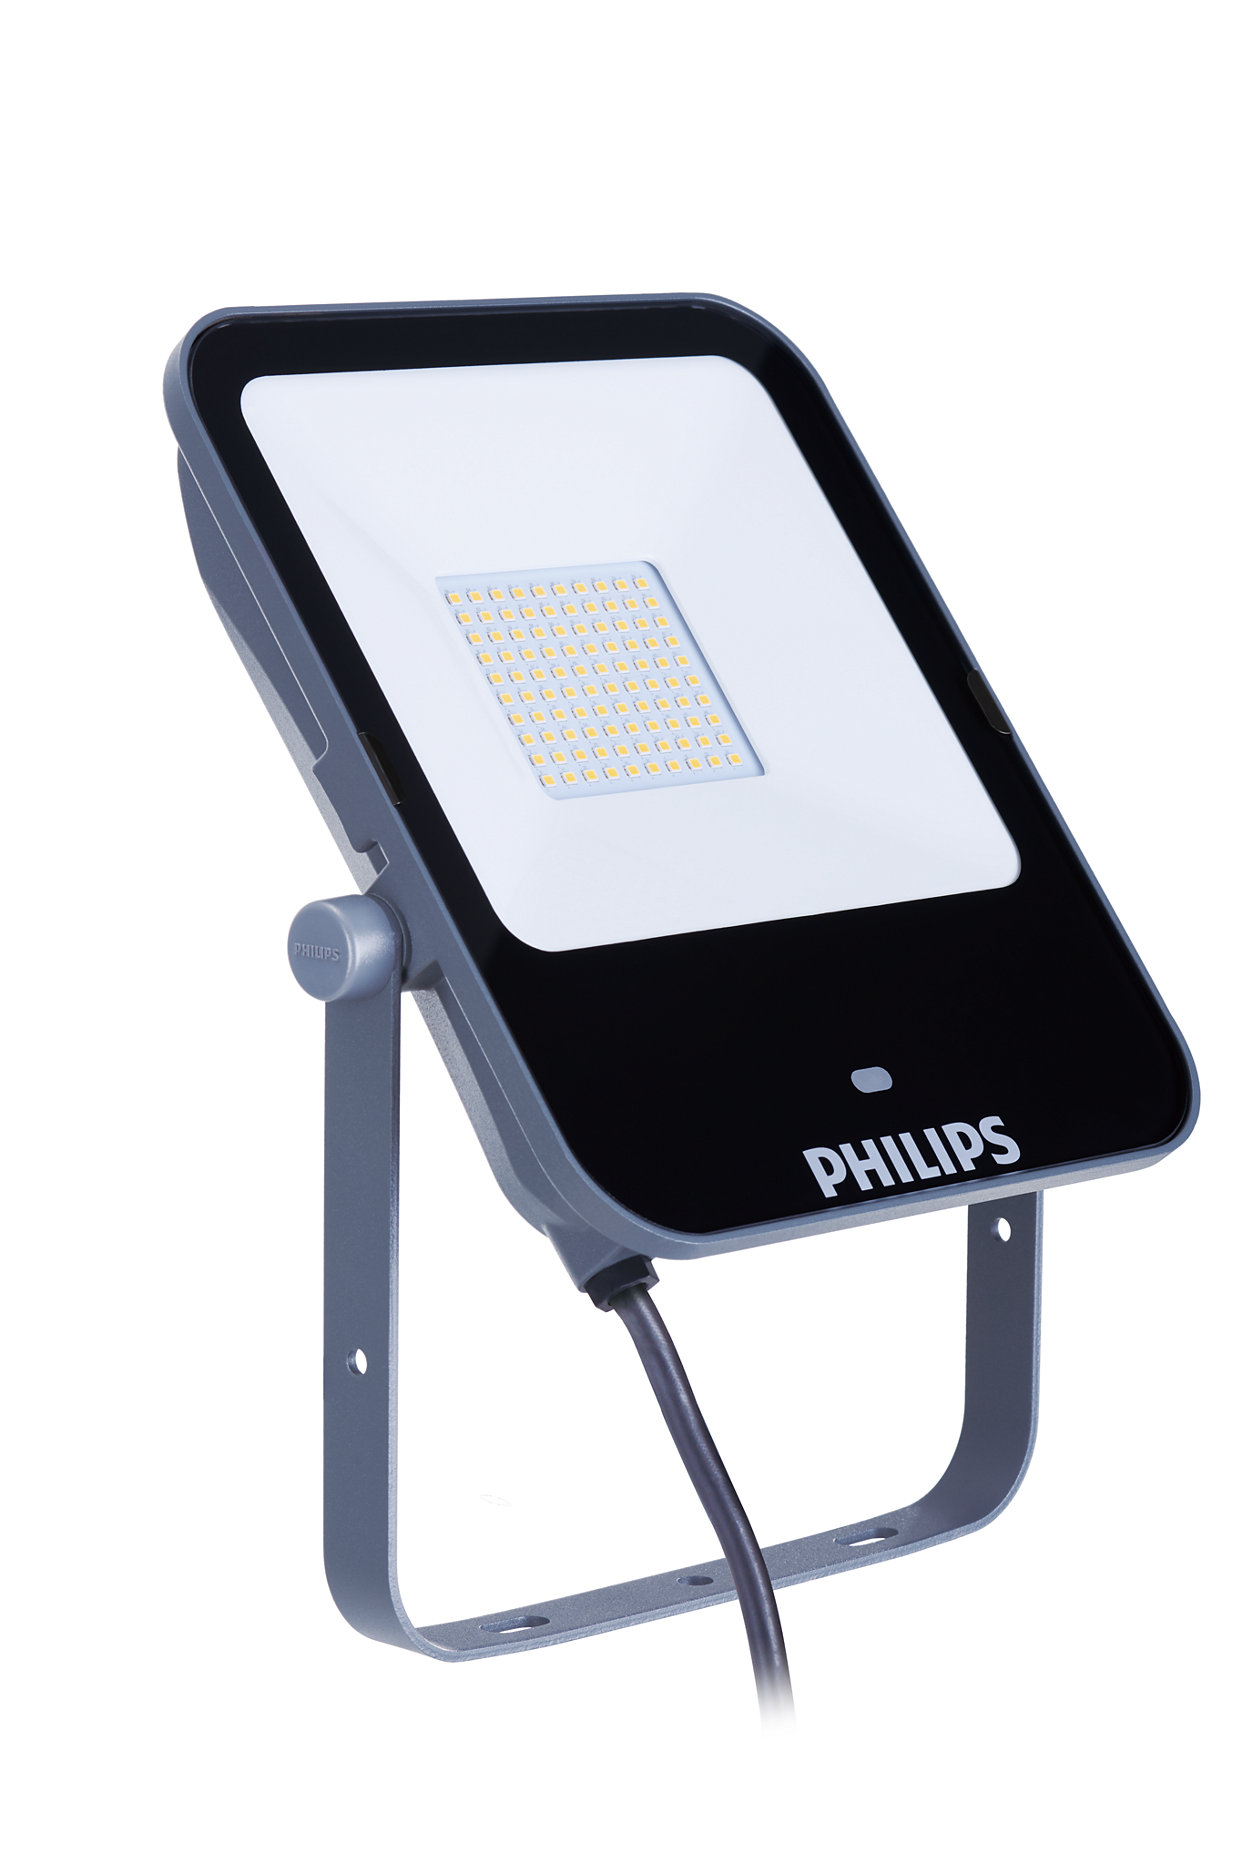 Ledinaire floodlight – Simply great LED